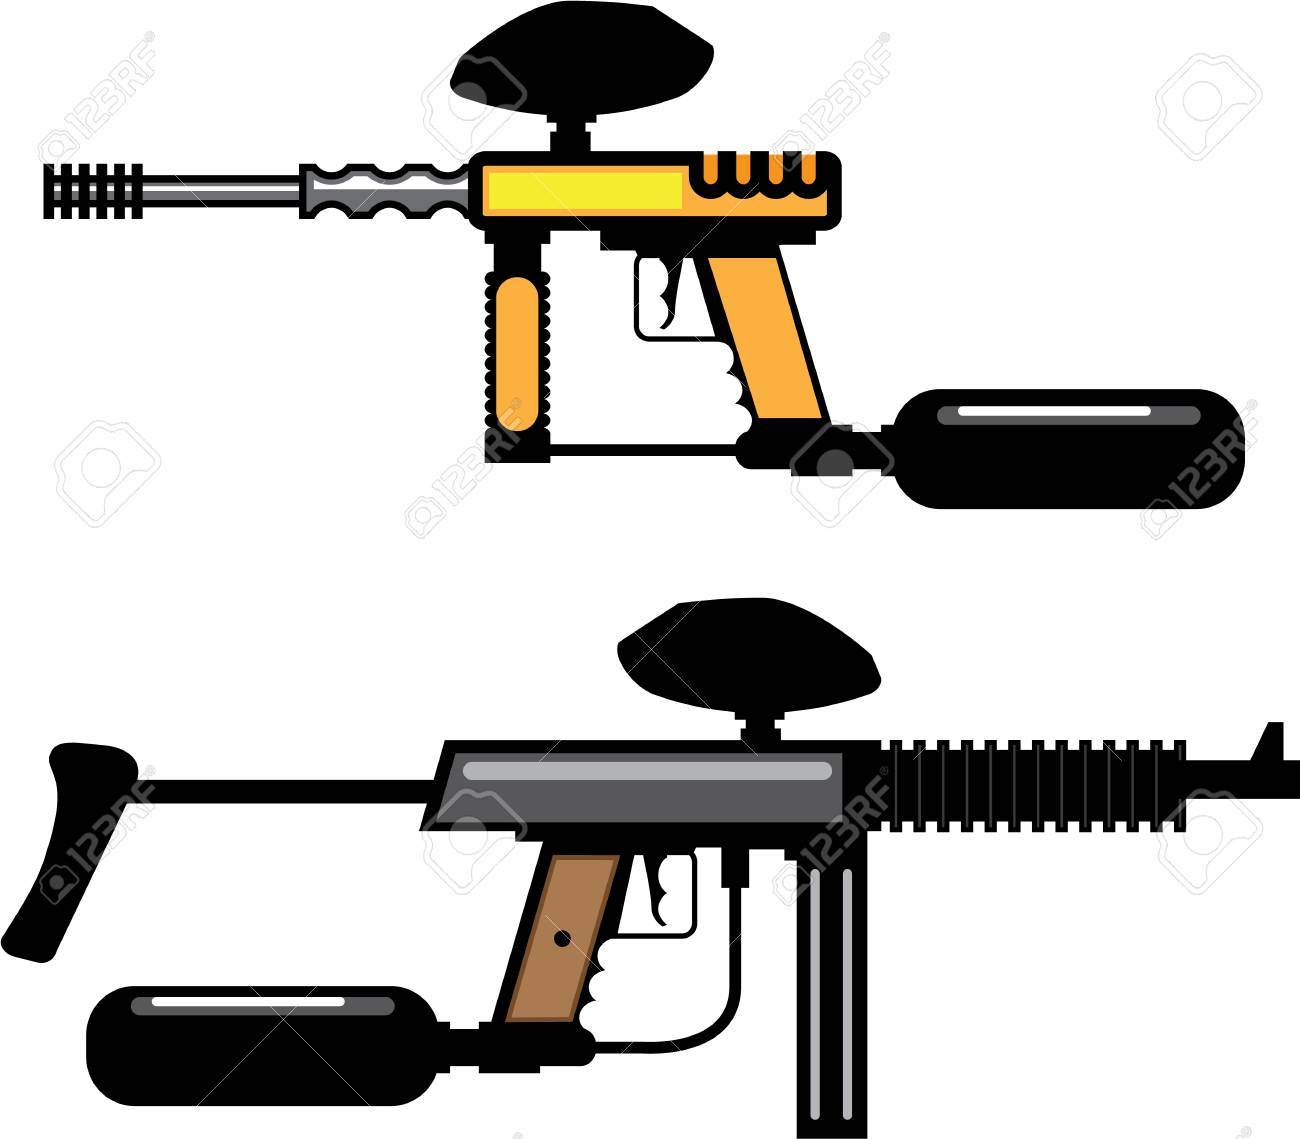 paintball gun color illustration clip art simple image royalty free rh 123rf com paintball splat clipart paintball clipart black